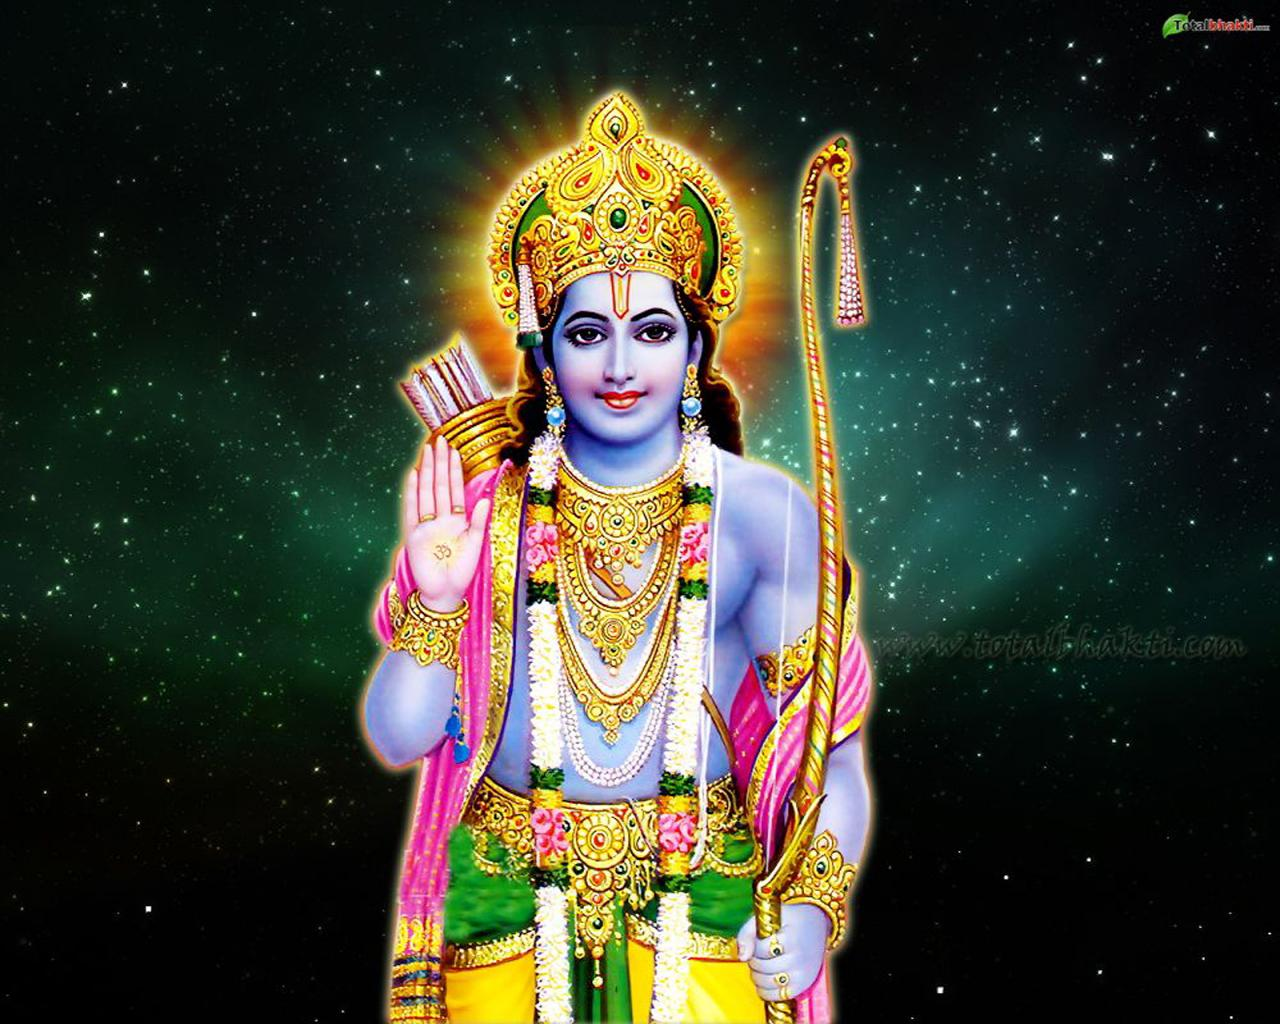 Lord Rama Wallpapers | Free Hindu God-Goddess Wallpapers, Photos Images Download